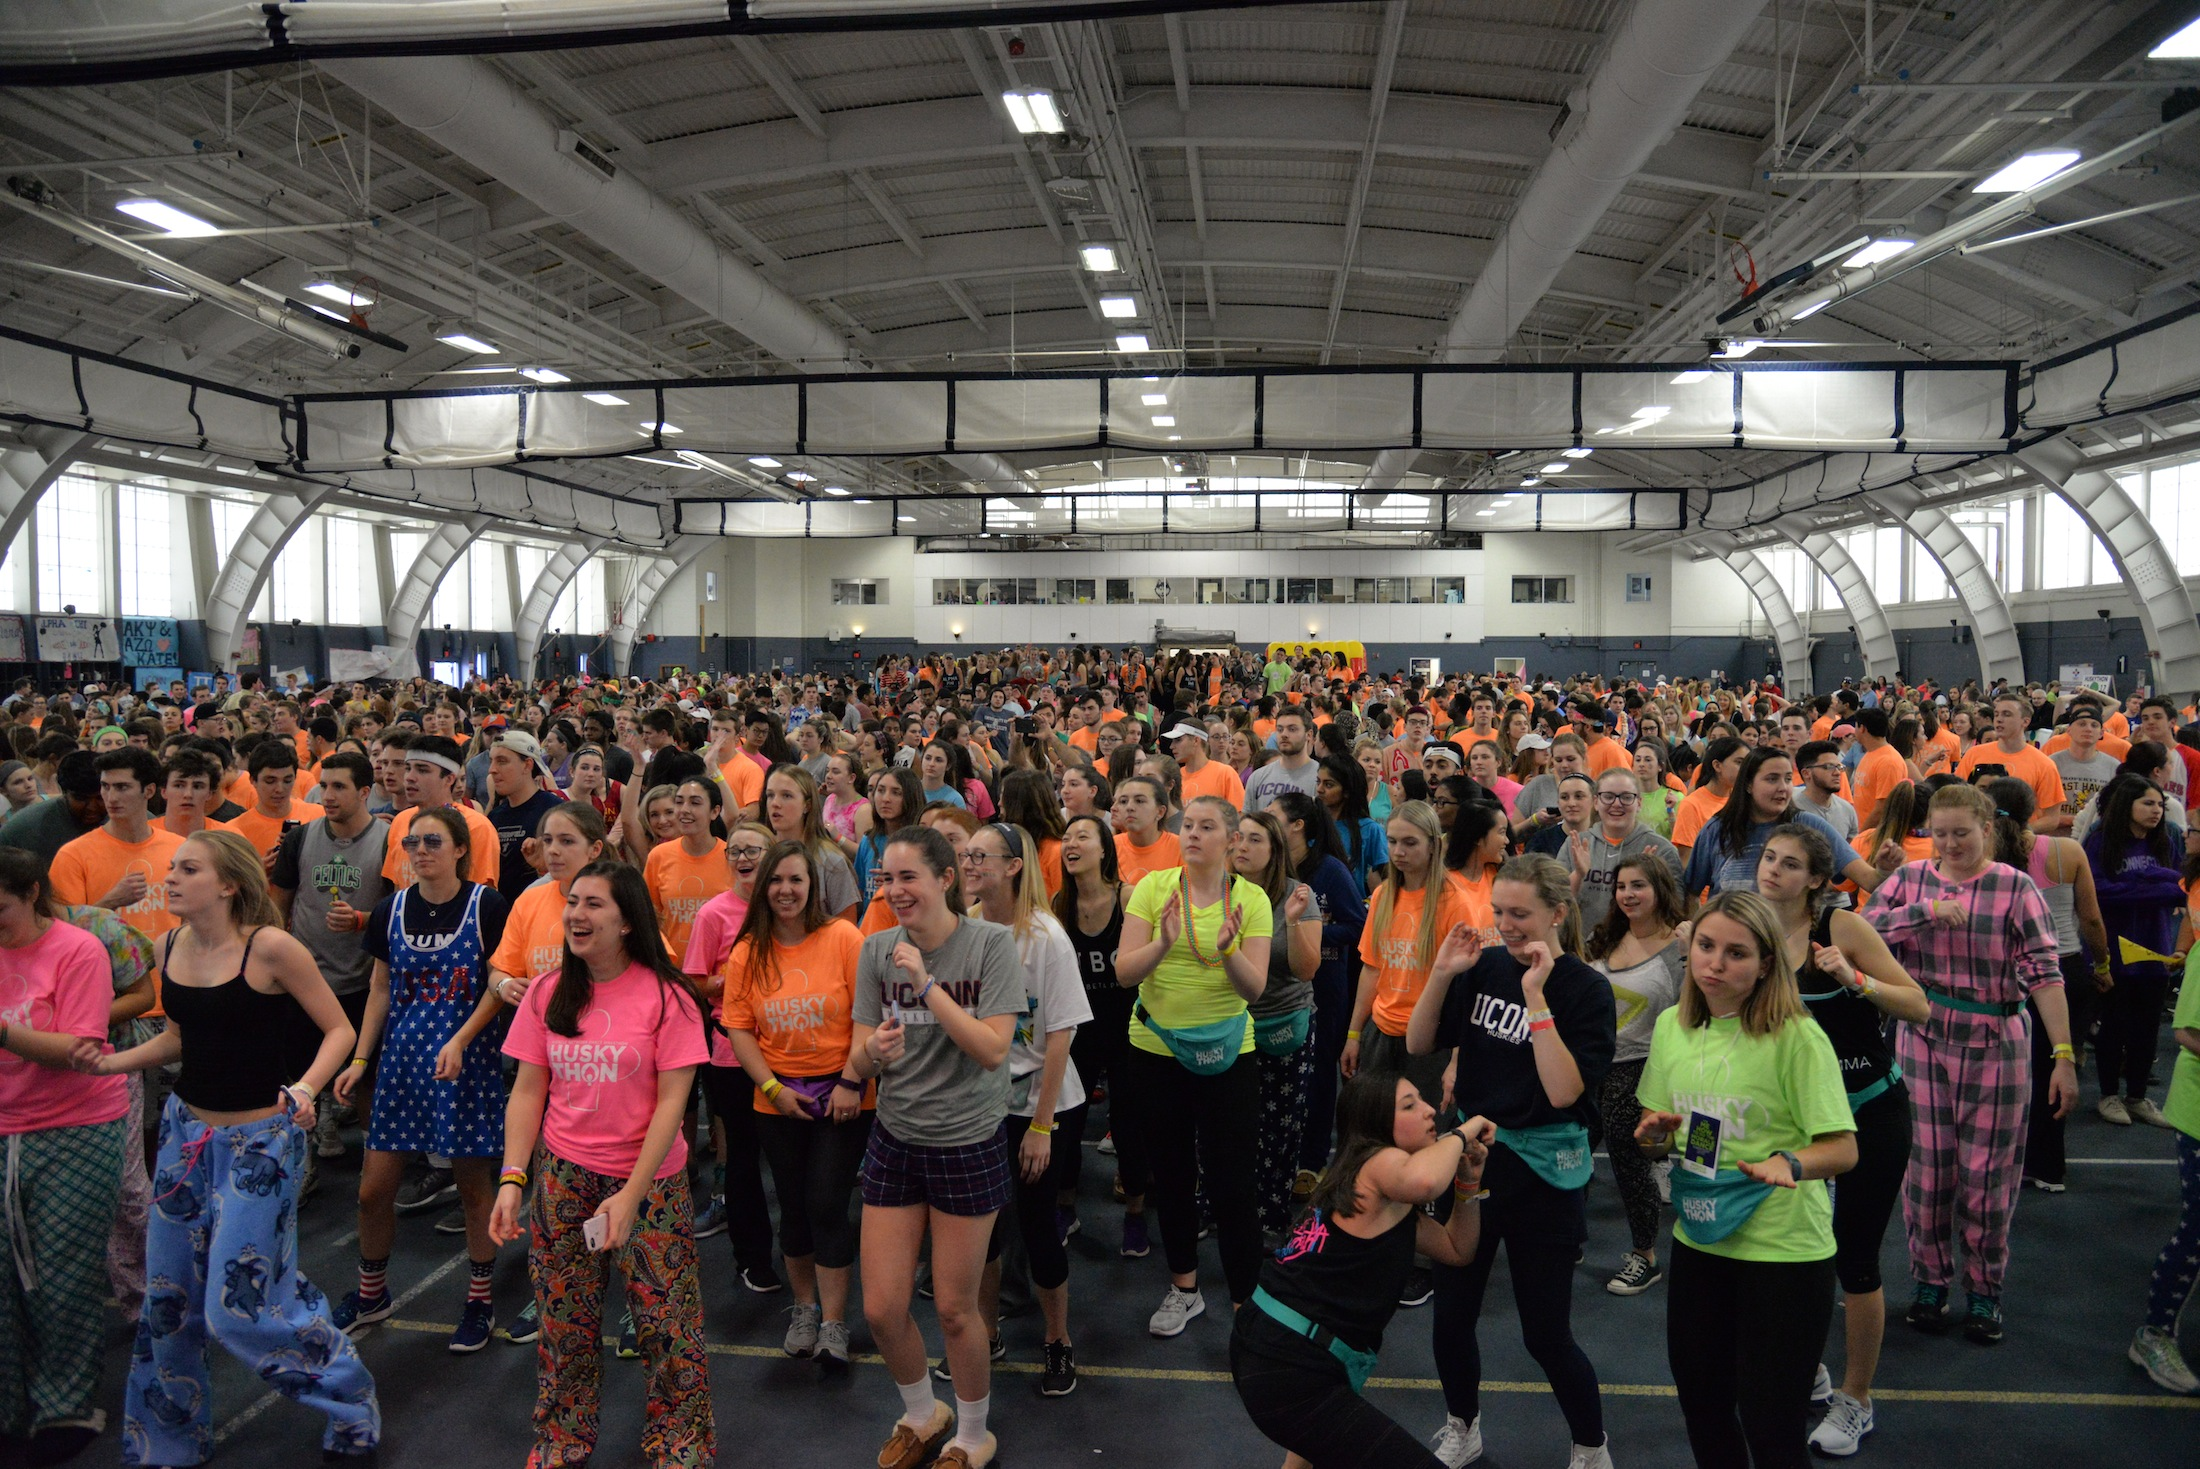 The HuskyTHON team is continuing to raise funds and prepare for the annual HuskyTHON event. (File photo?The Daily Campus)